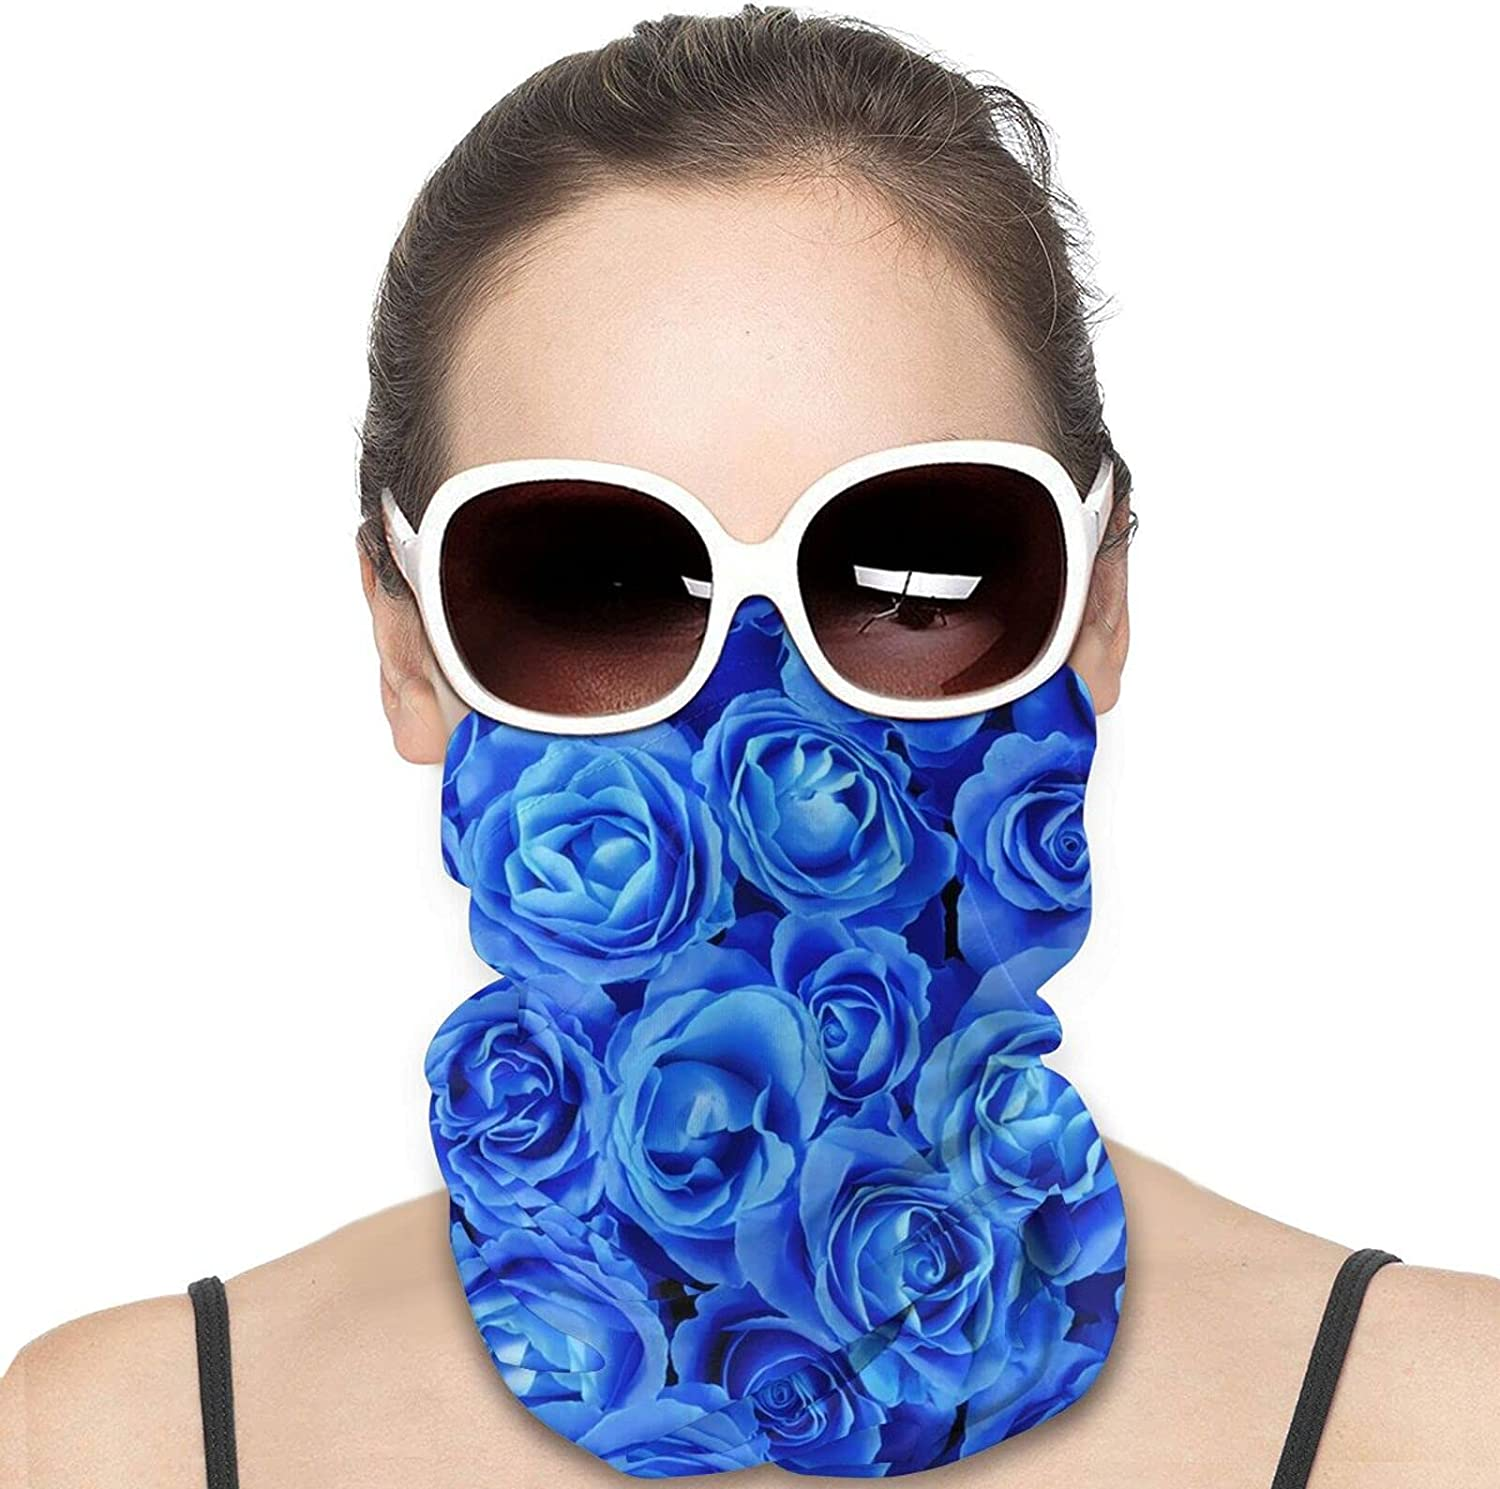 Rose Blue Round Neck Gaiter Bandnas Face Cover Uv Protection Prevent bask in Ice Scarf Headbands Perfect for Motorcycle Cycling Running Festival Raves Outdoors